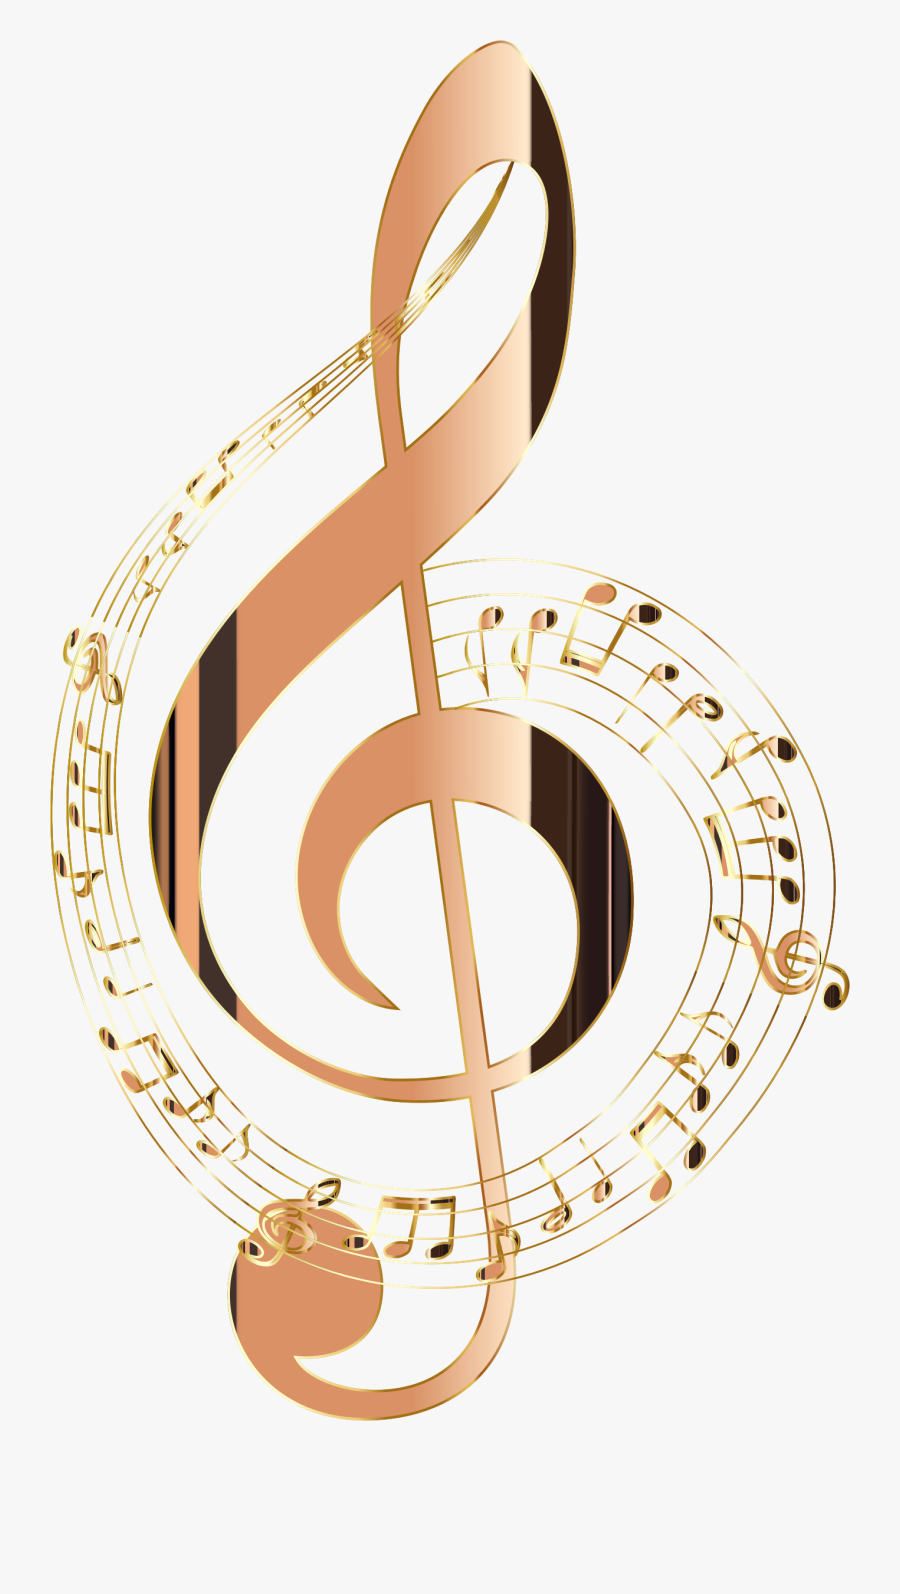 Transparent Music Note Clipart - Colorful Transparent Background Music Notes, Transparent Clipart